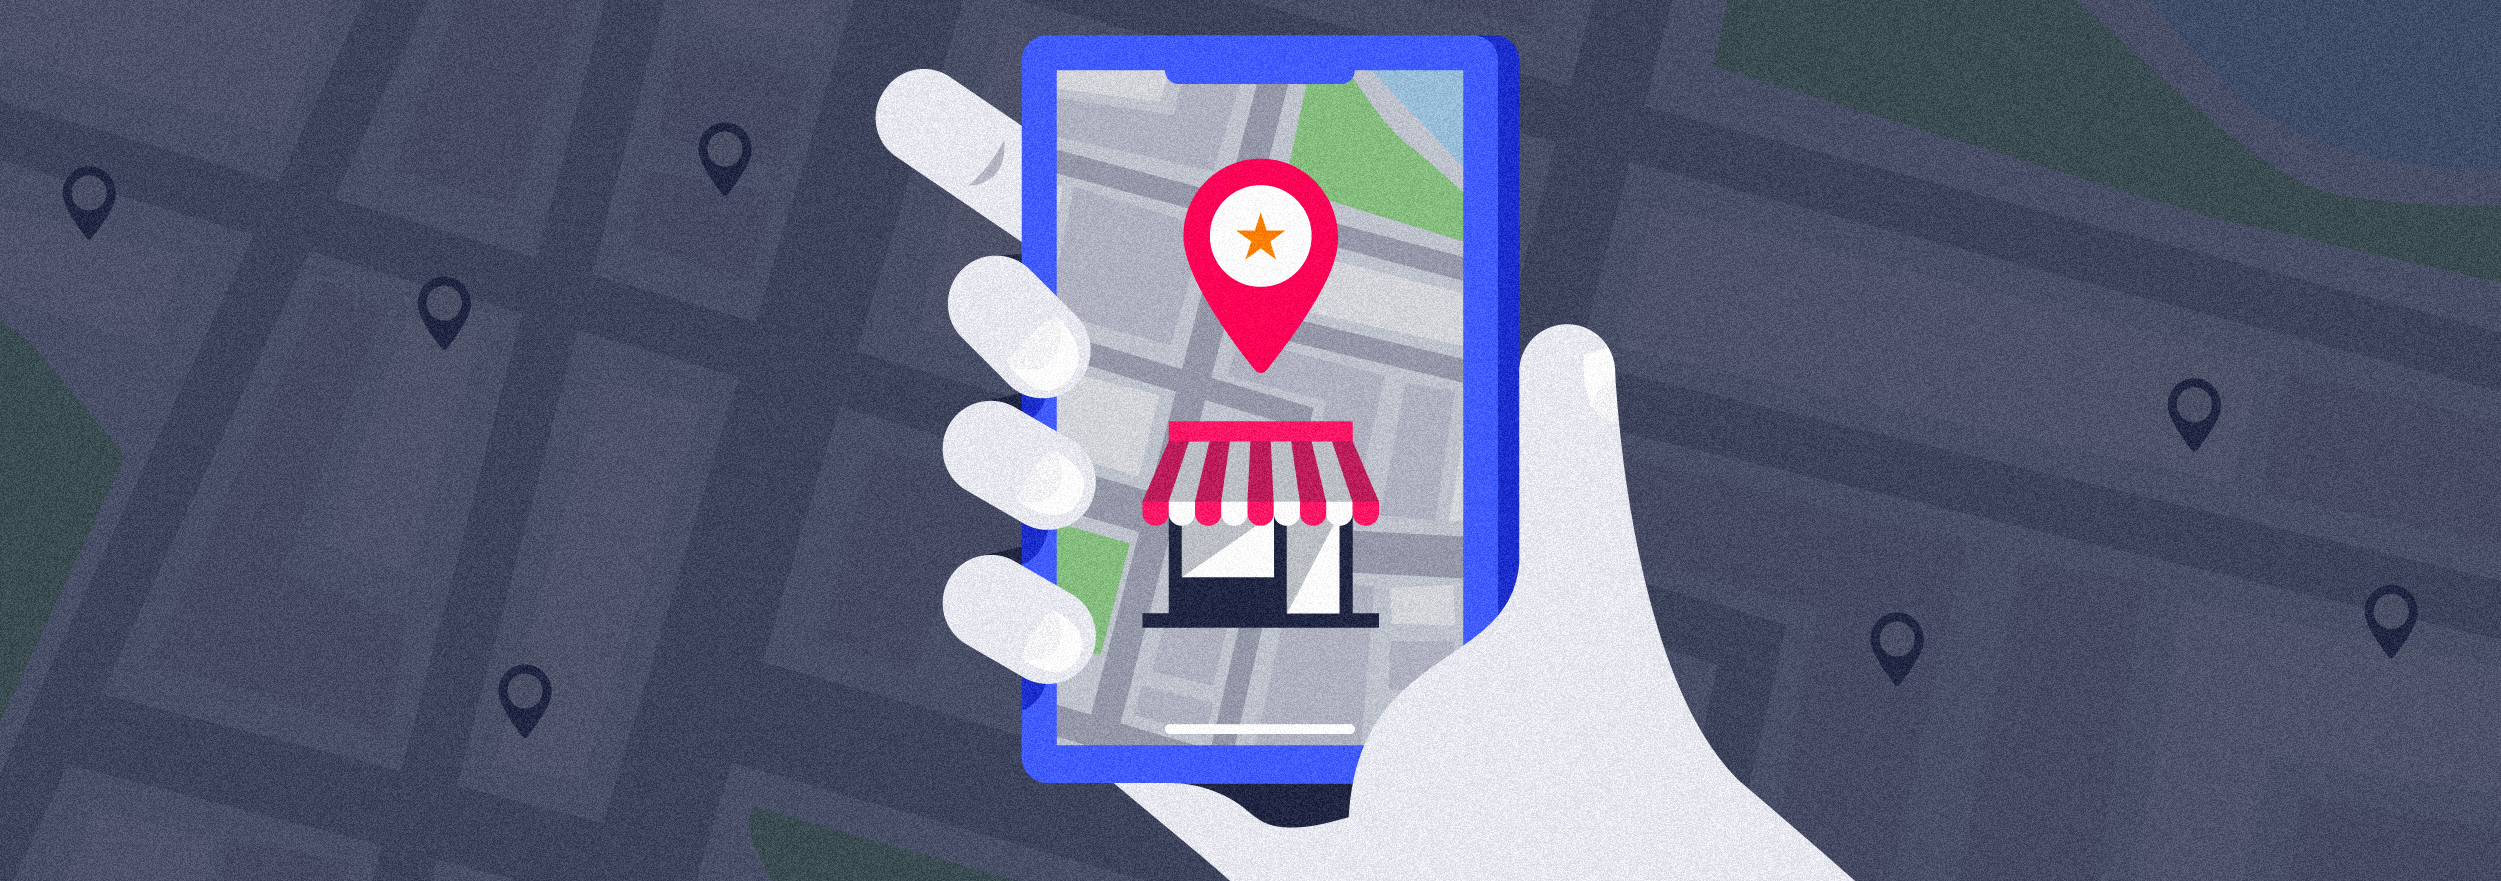 Hyperlocal Marketing: What You Need to Know